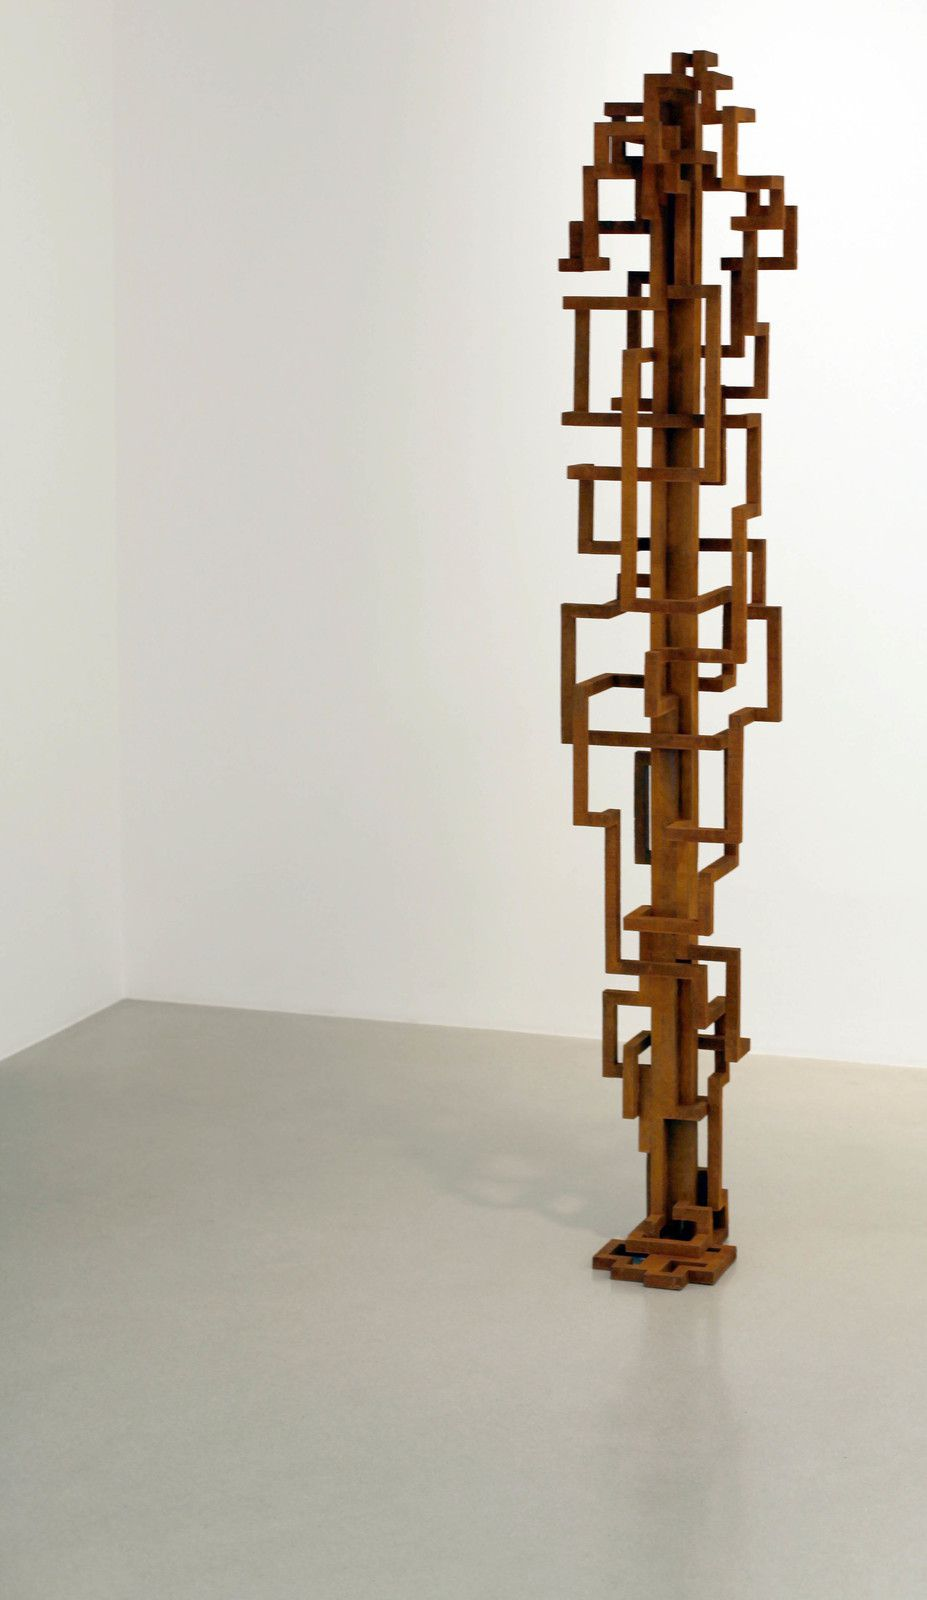 """RETURN"", 2019 de Antony GORMLEY - Courtesy Galerie Thaddaeus ROPAC © Photo Éric Simon"